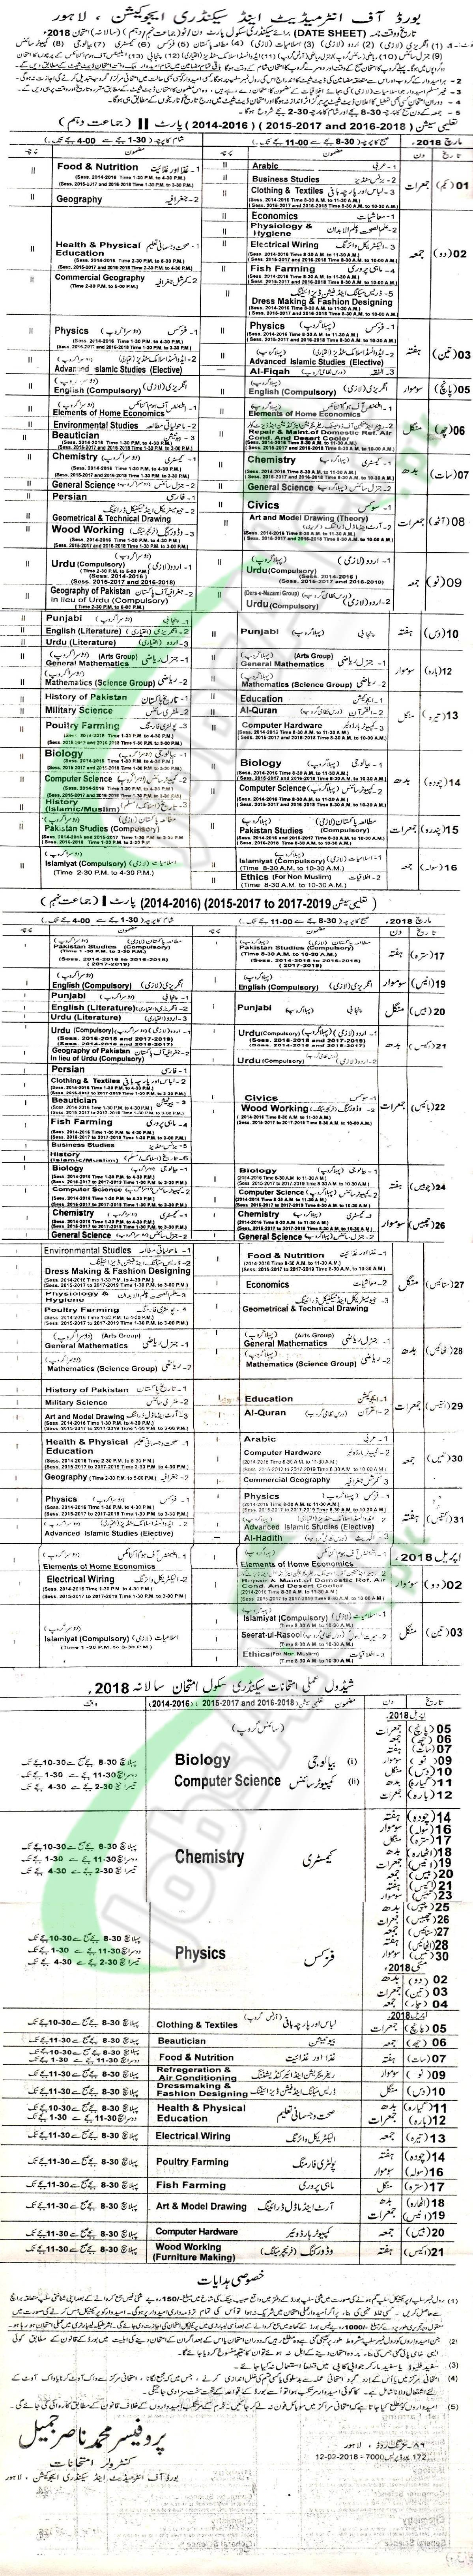 Armoured Vehicles Latin America ⁓ These Board Date Sheet